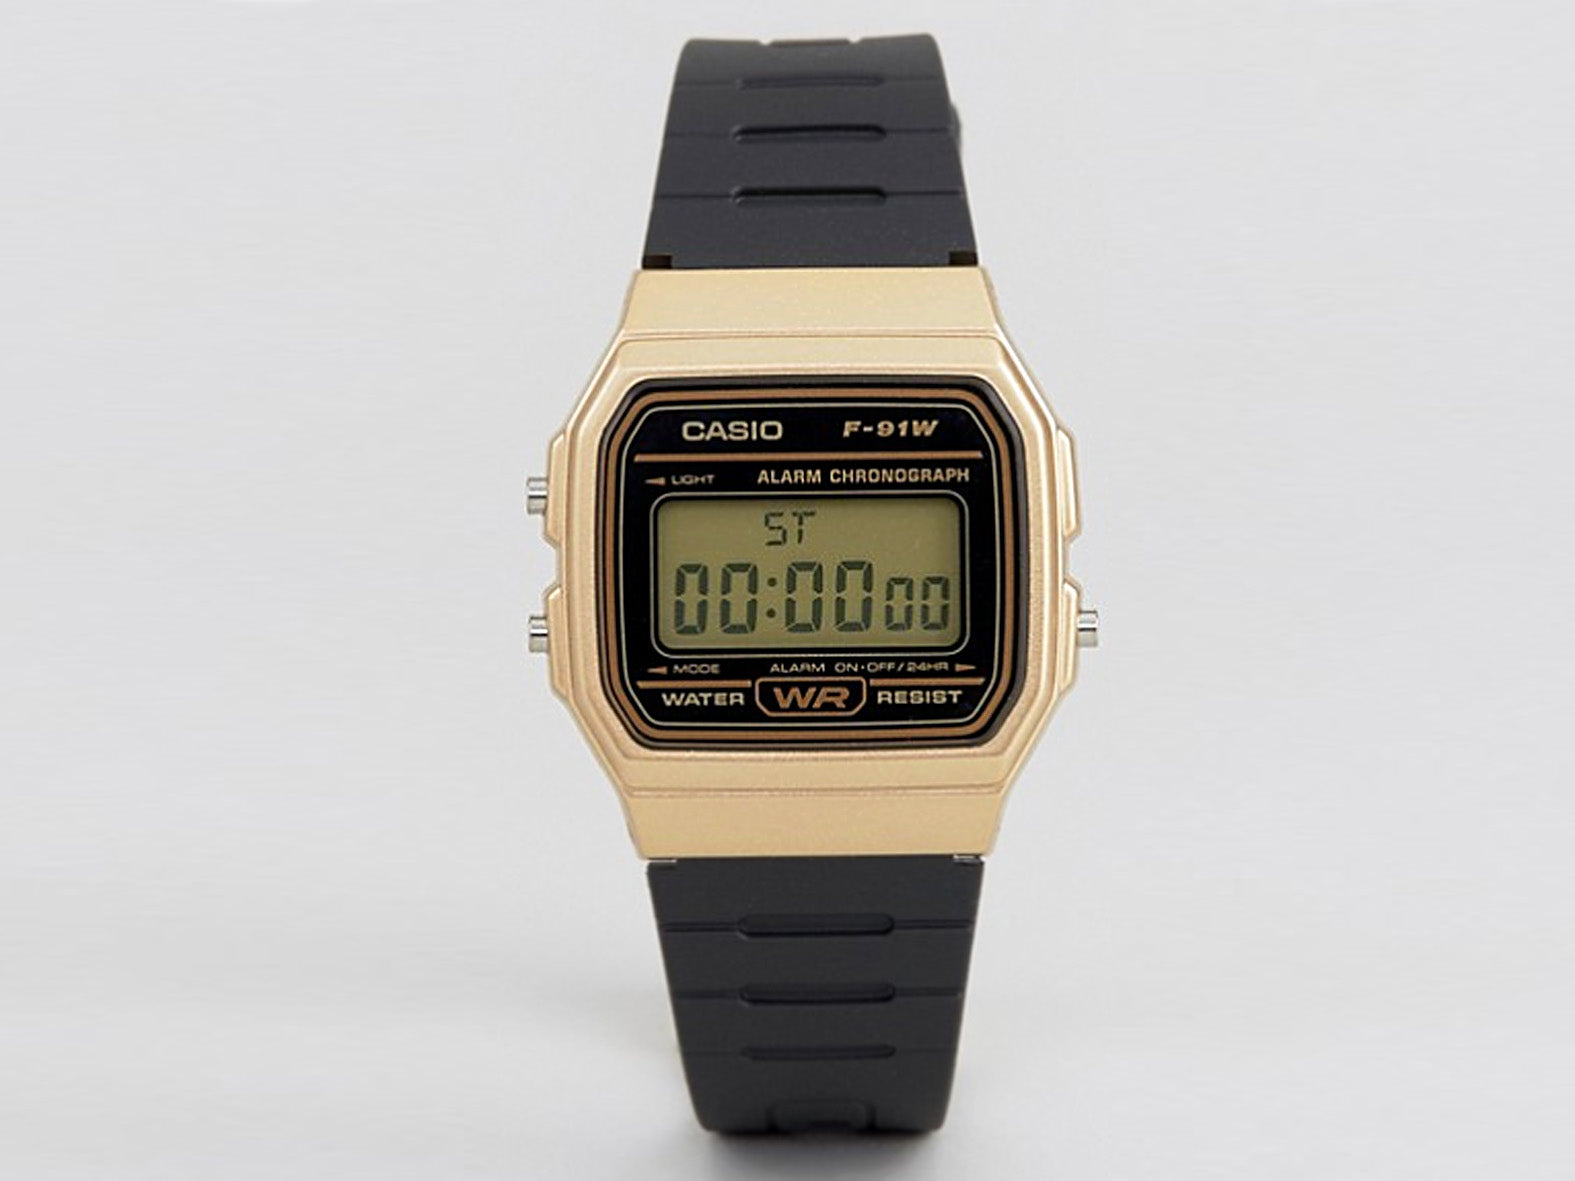 CASIO - DIGITAL, VINTAGE WR/ SW /LED LIGHT, ALARM